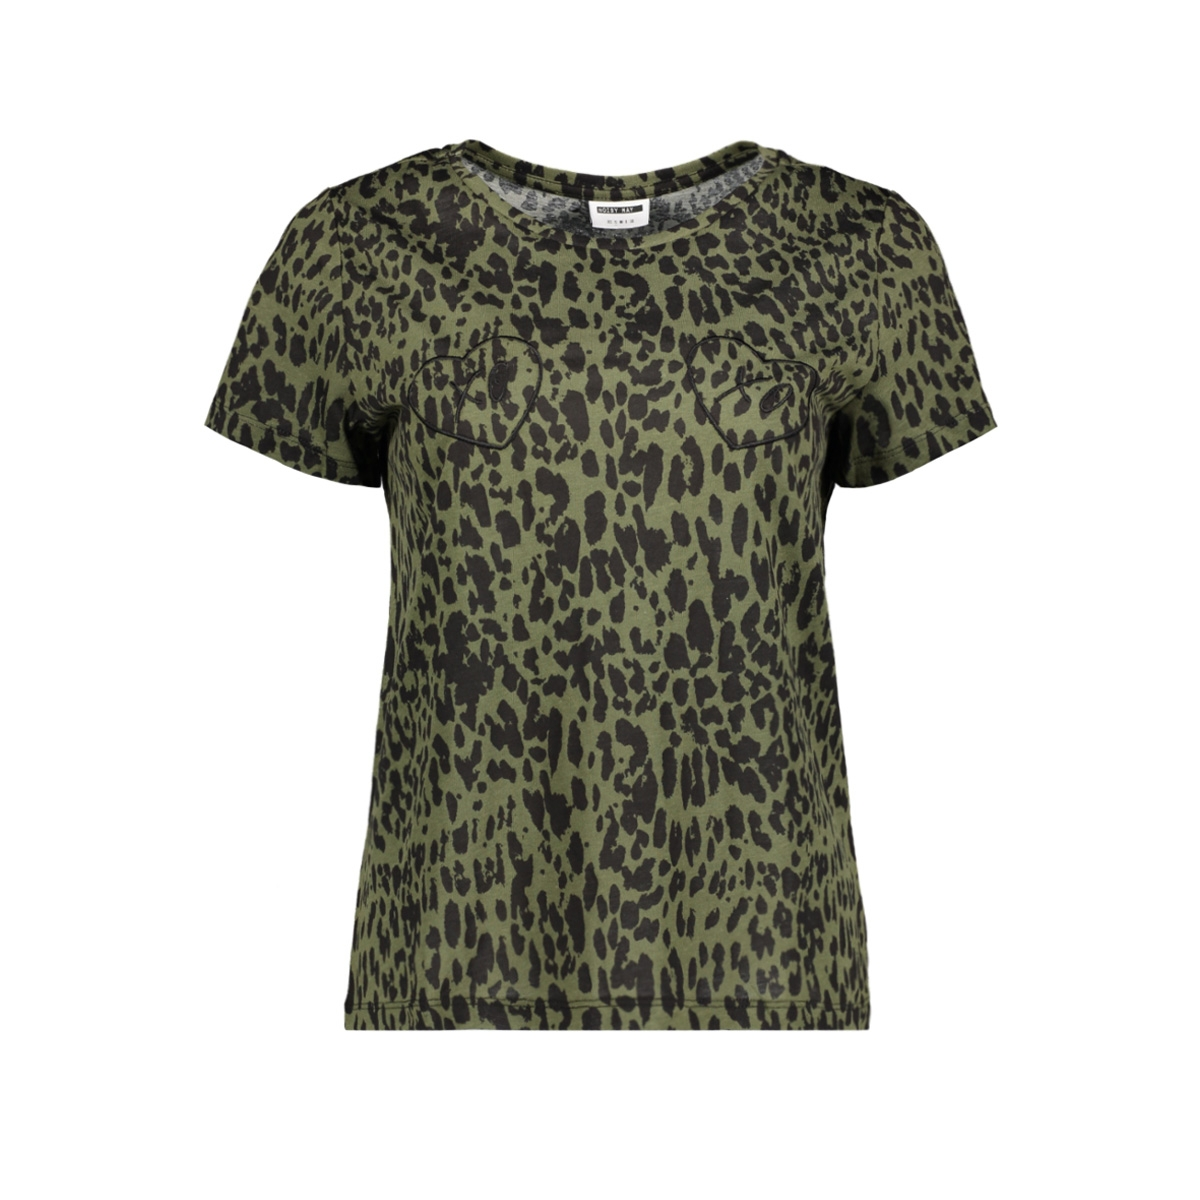 nmxo s/s top x 27007511 noisy may t-shirt olive night/green leopard